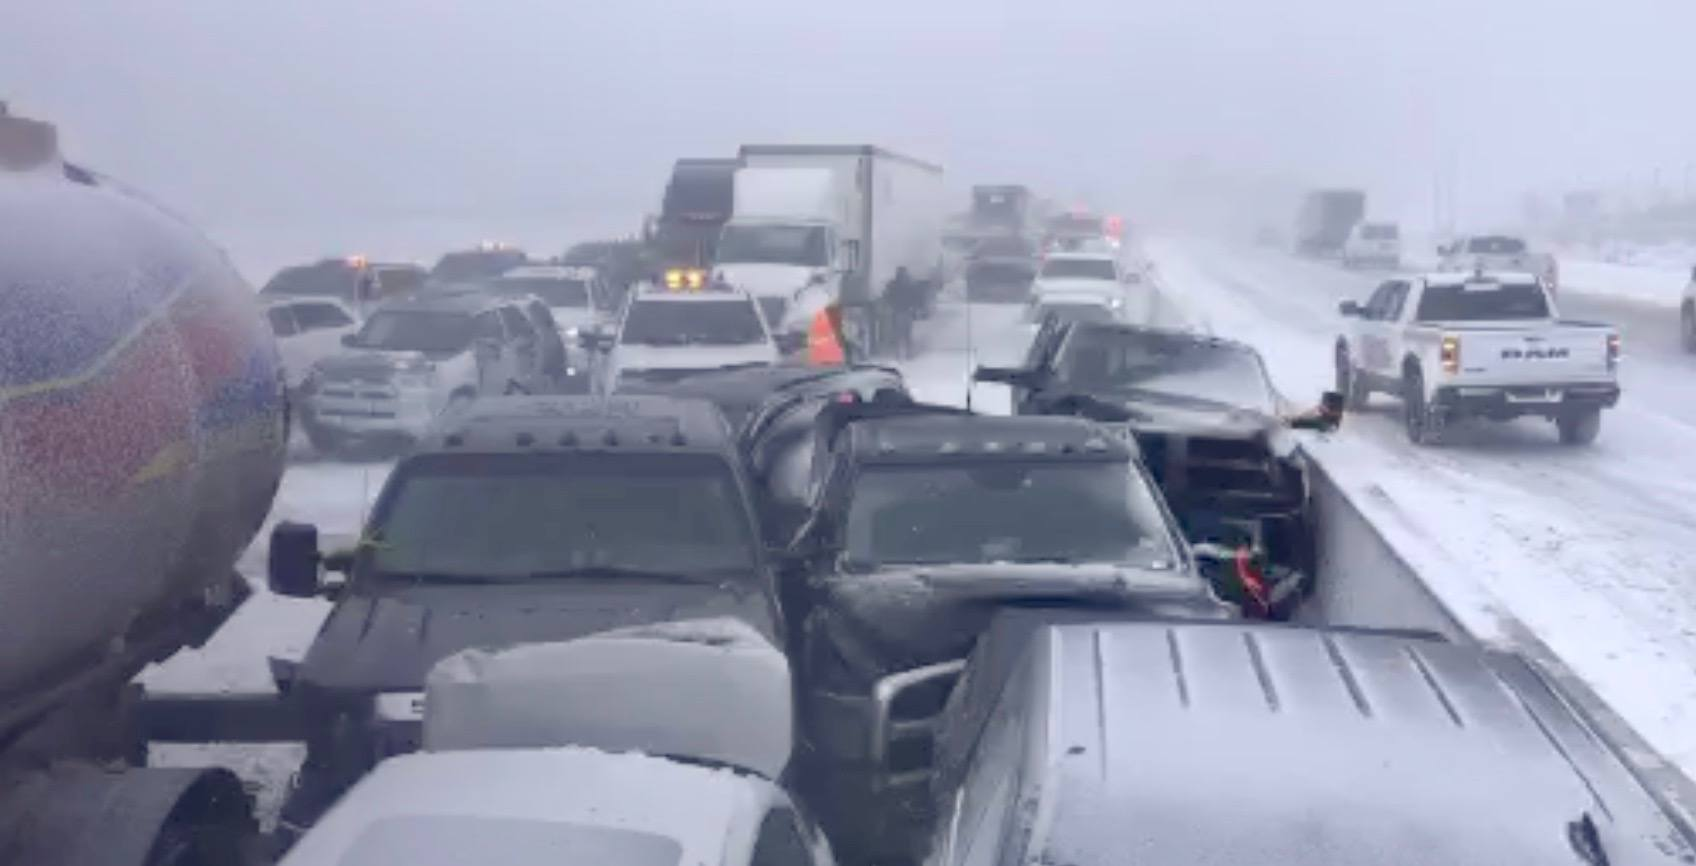 Up to 30 vehicles involved in massive pile-up on Highway 400 (VIDEOS)